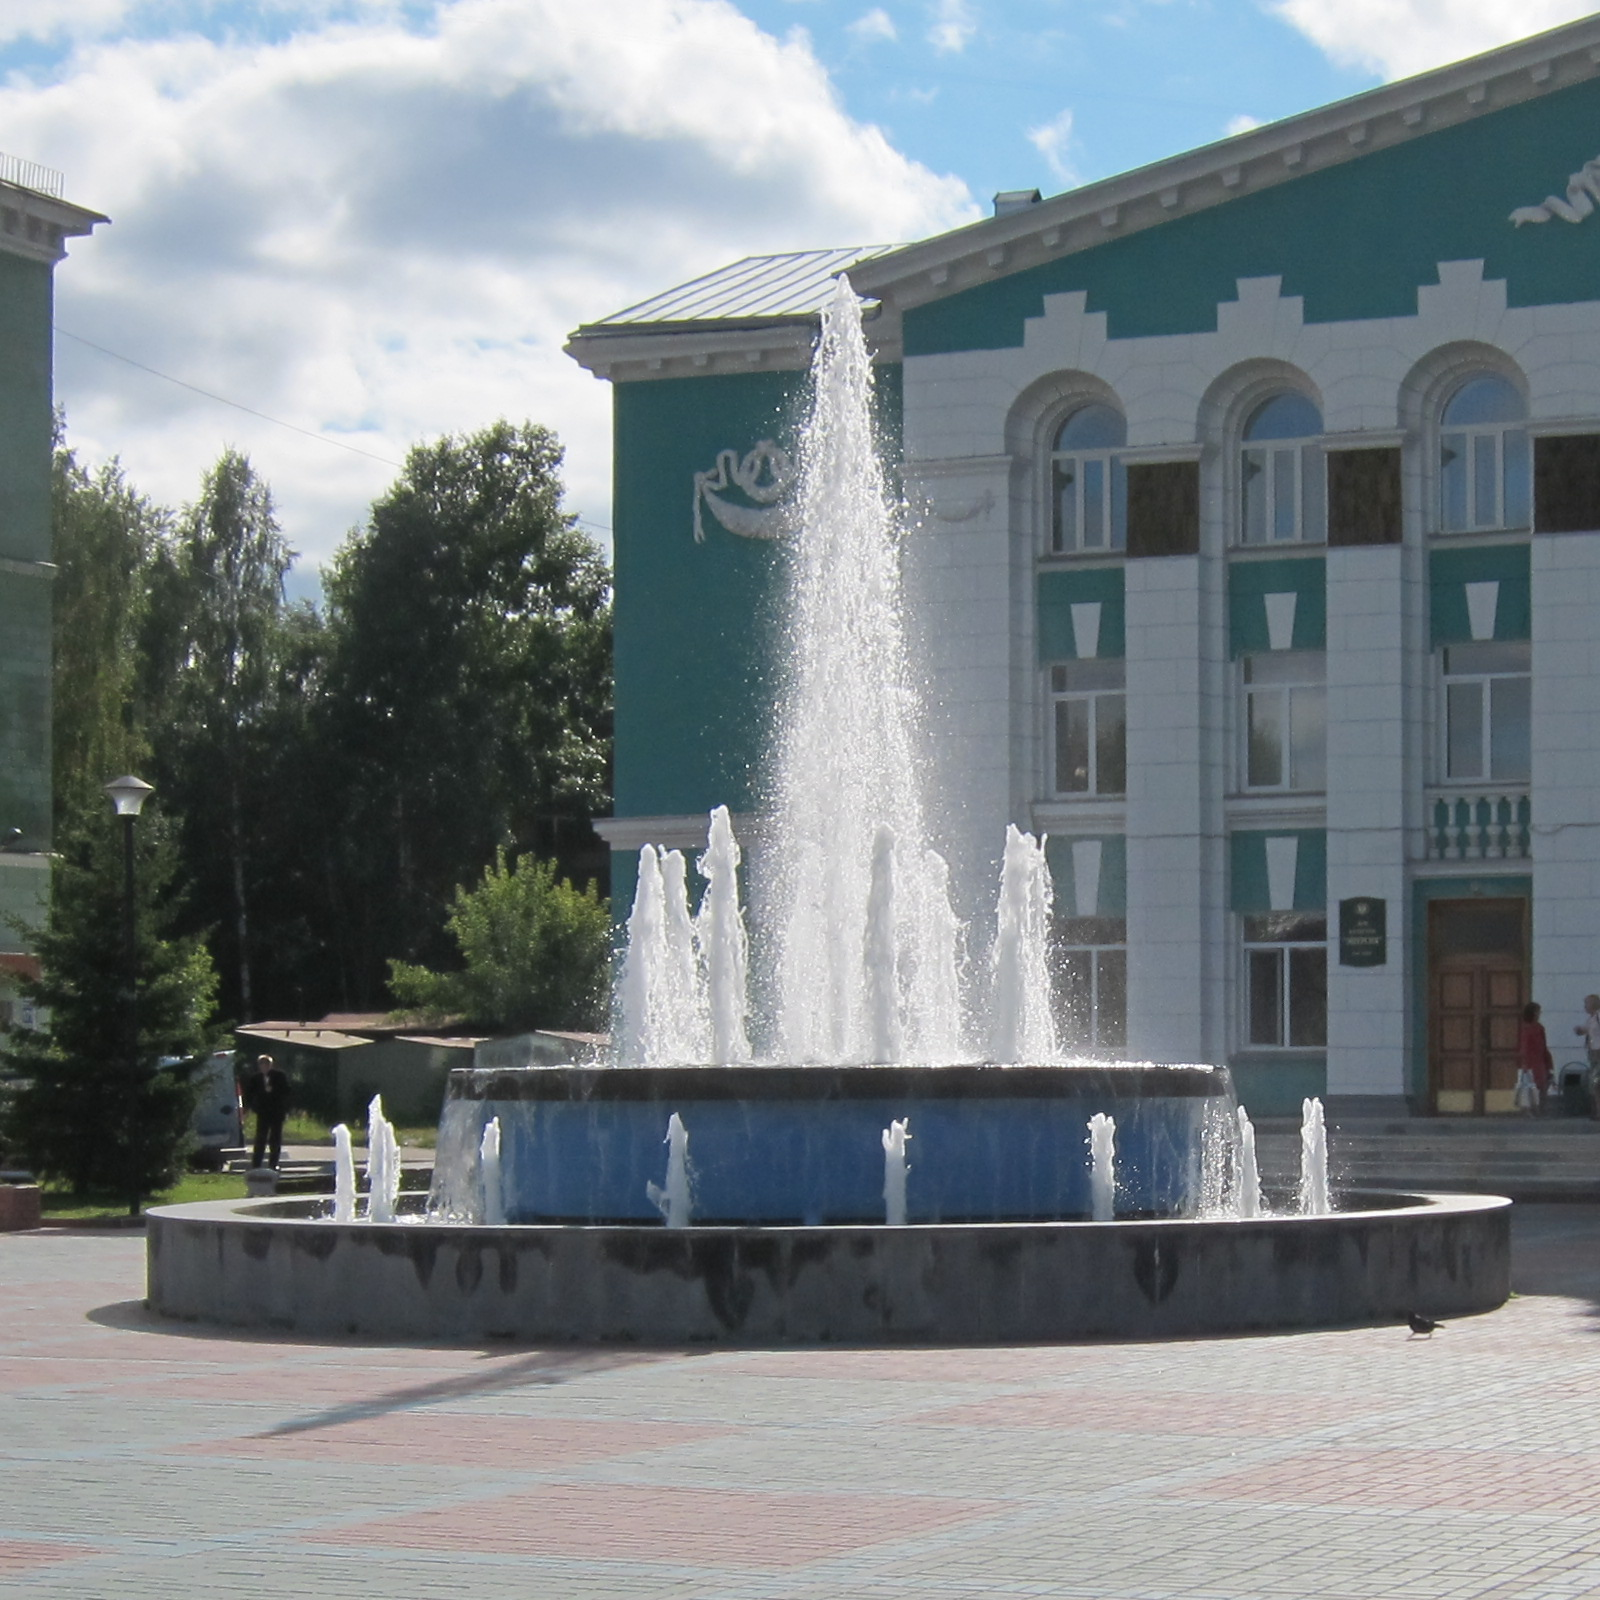 File:Fountain in front of Energiya House of Culture in ...